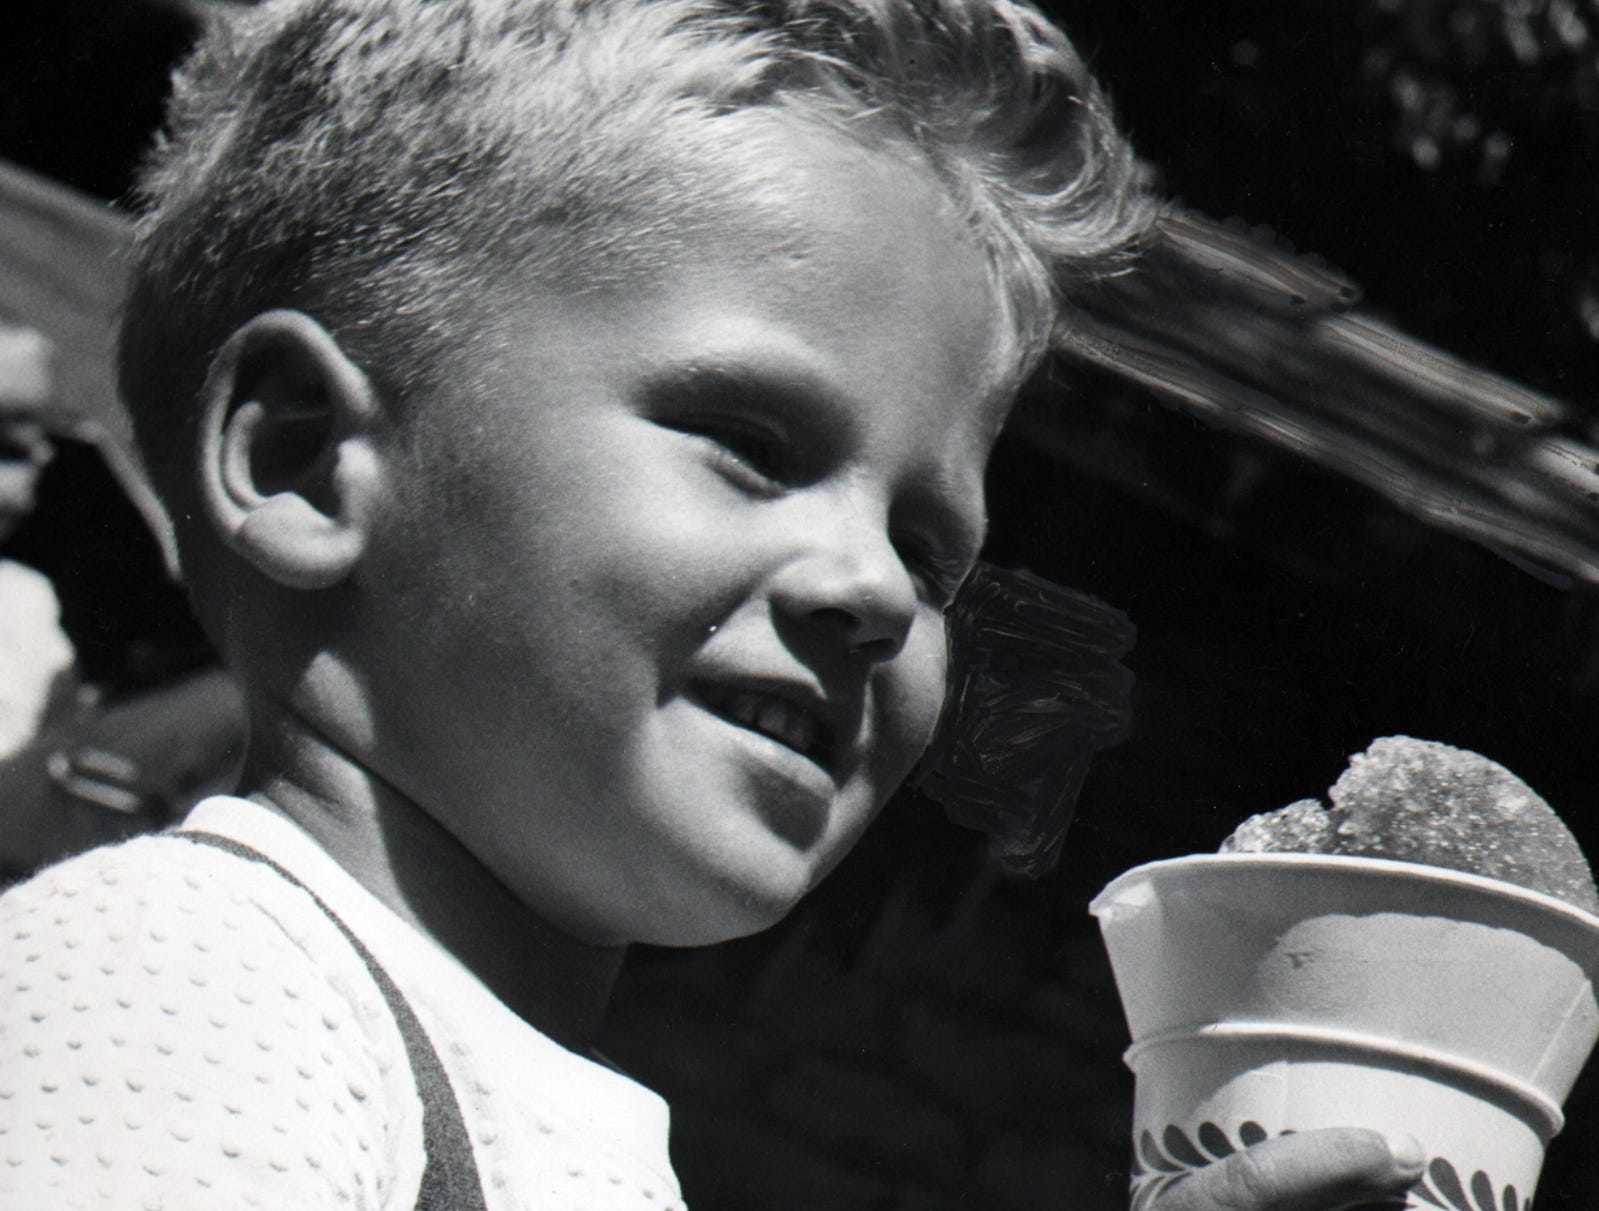 This unidentified boy enjoys a snow cone during warm weather.